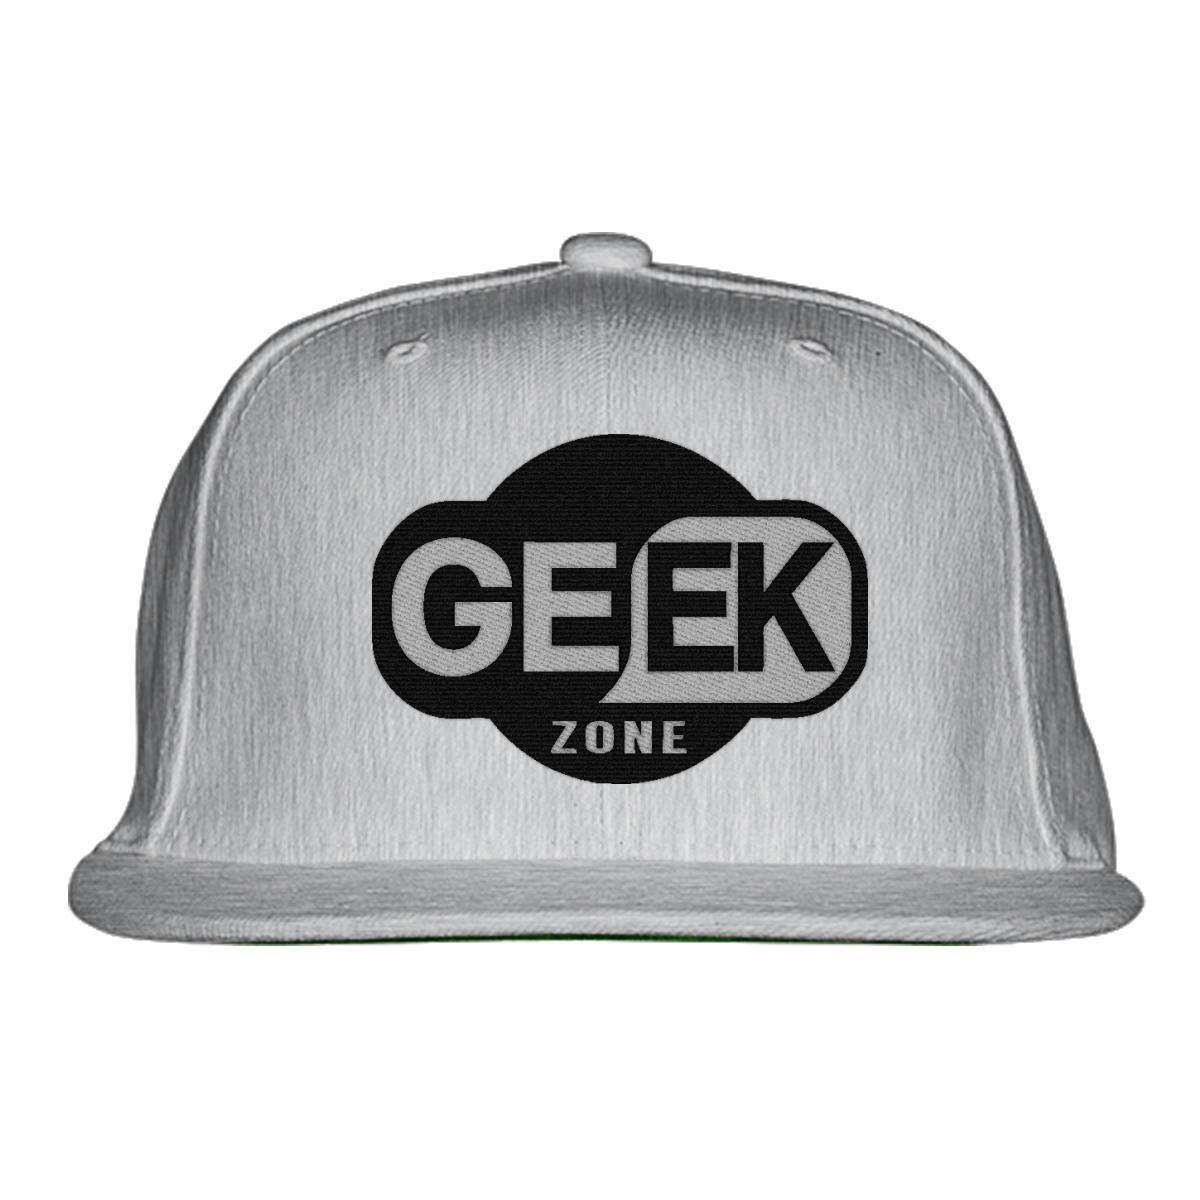 Geek Zone Snapback Hat - Embroidery +more 9b4bf130966